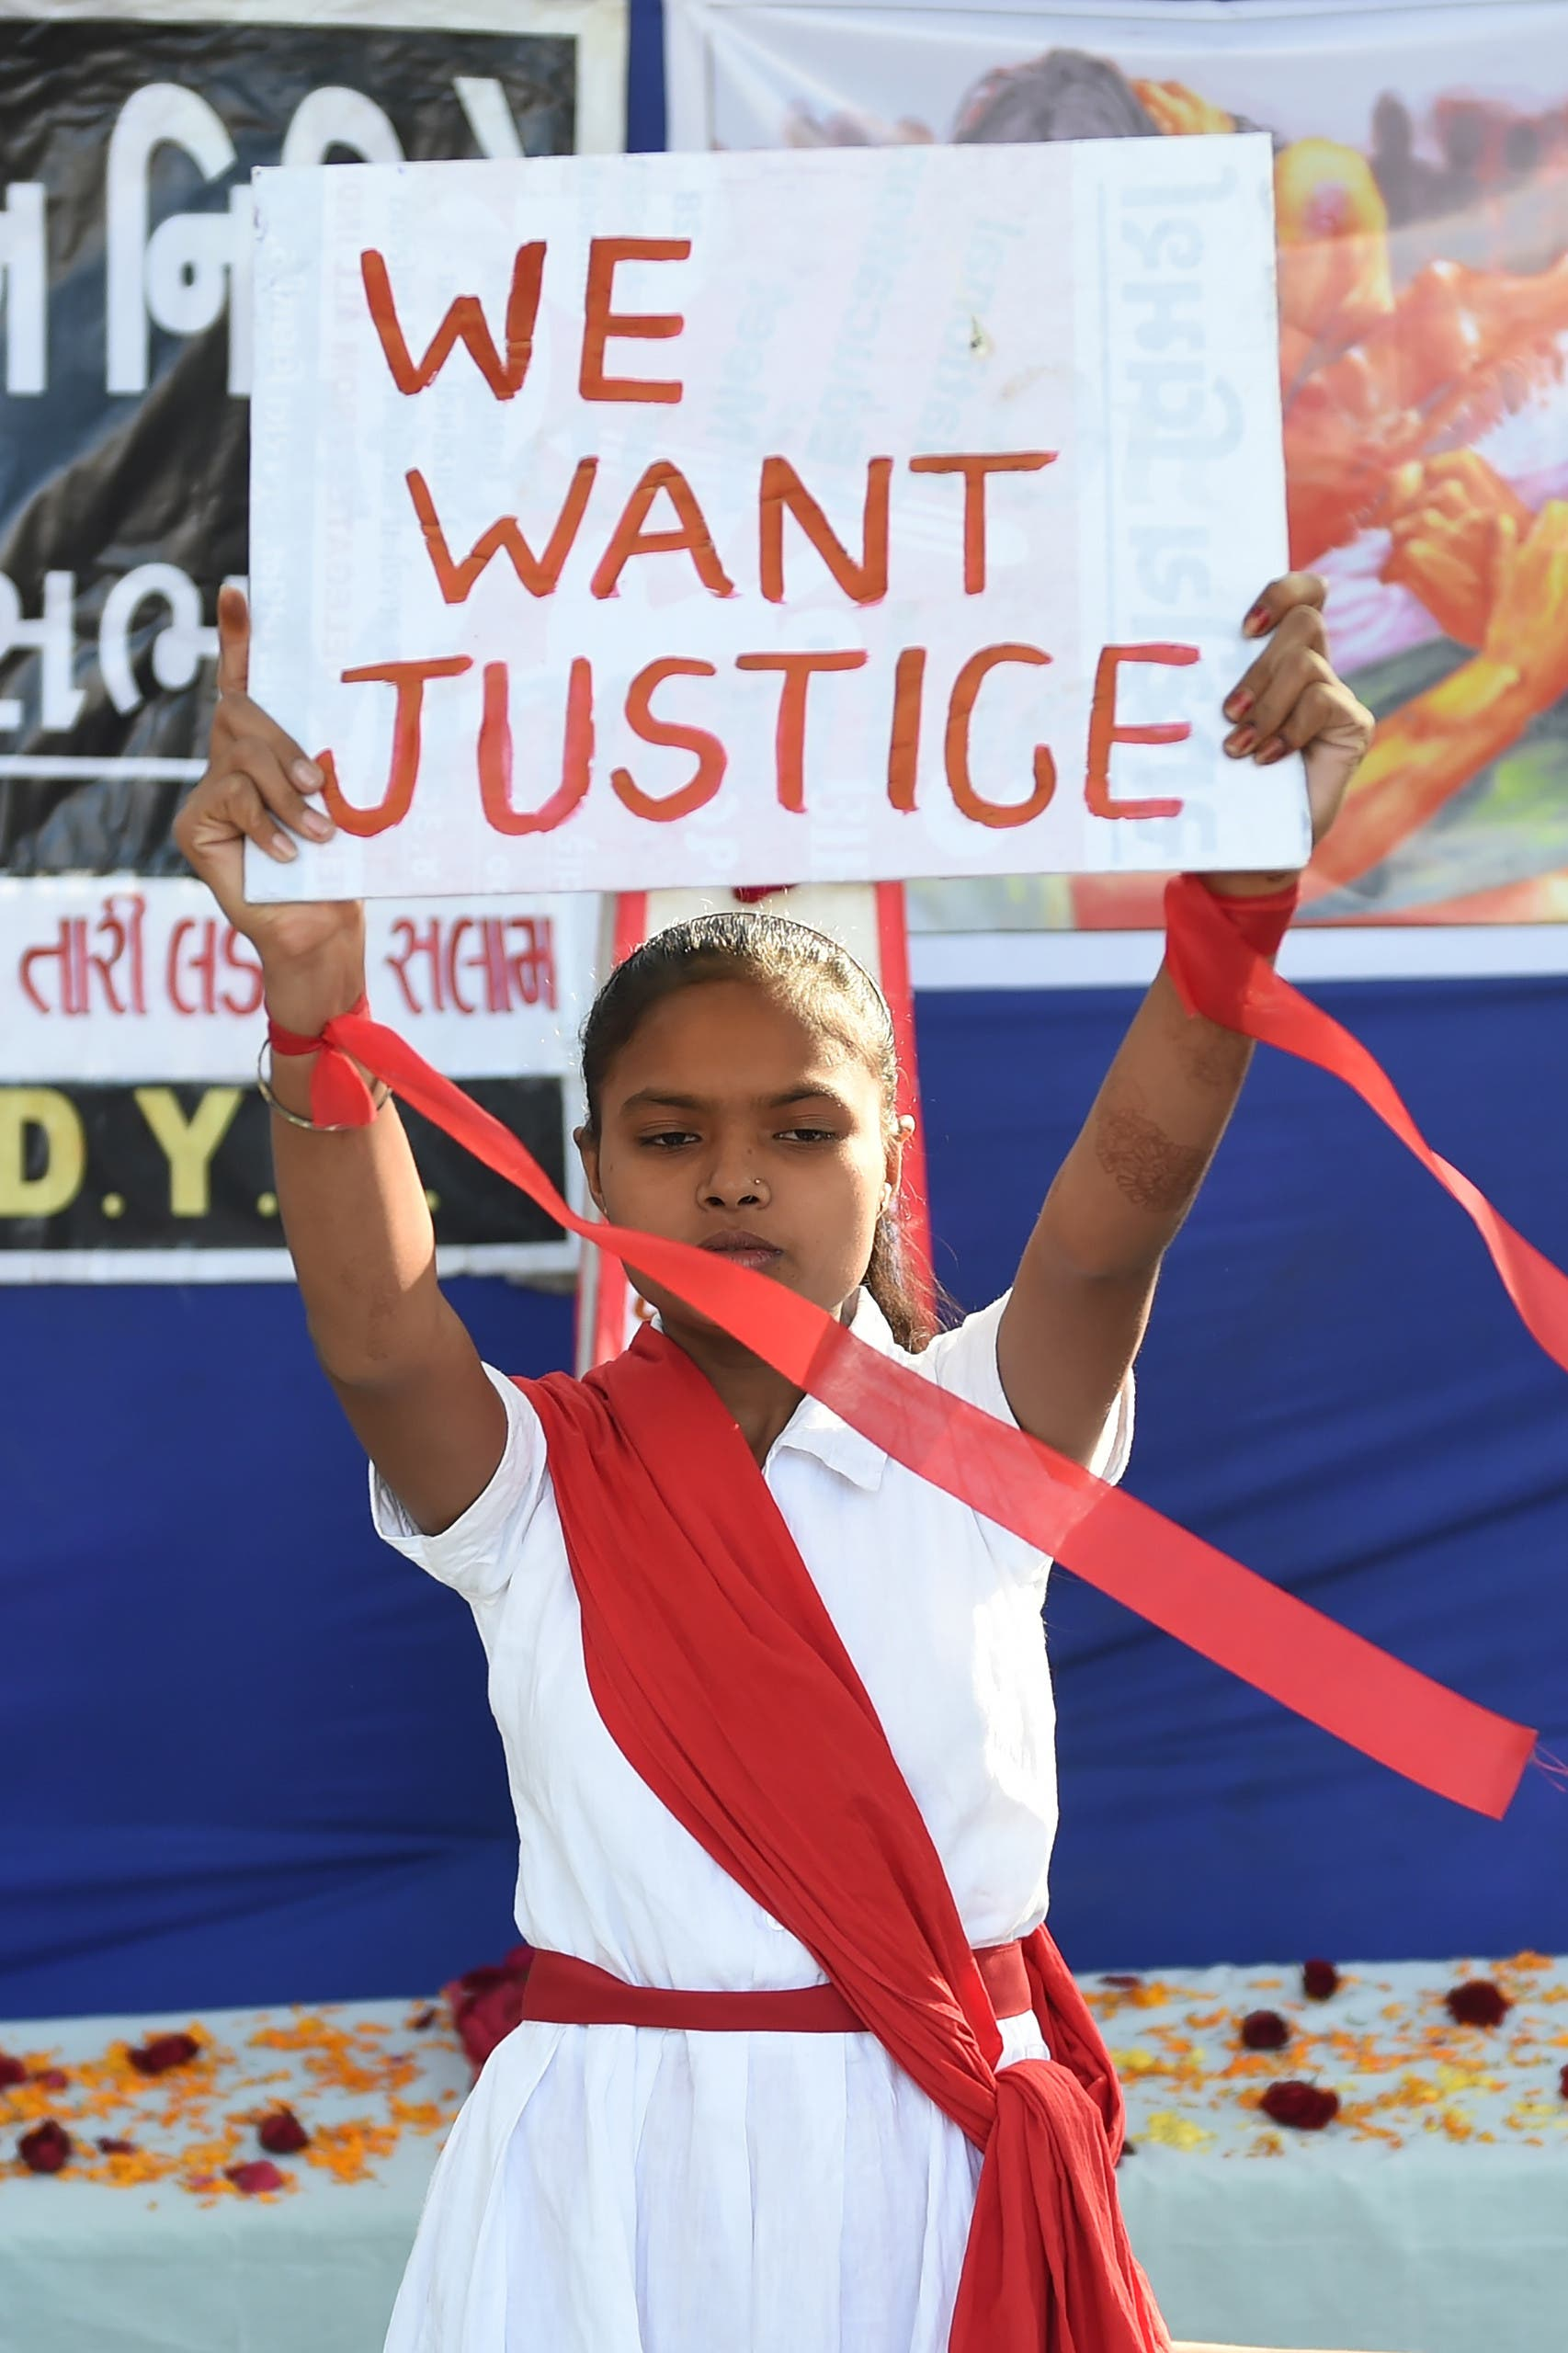 A young student holds a placard during 'Nirbhaya Day' to mark the anniversary of the brutal rape case of a 23-year-old physiotherapy student on a bus in New Delhi in 2012, in Ahmedabad on December 16, 2019.